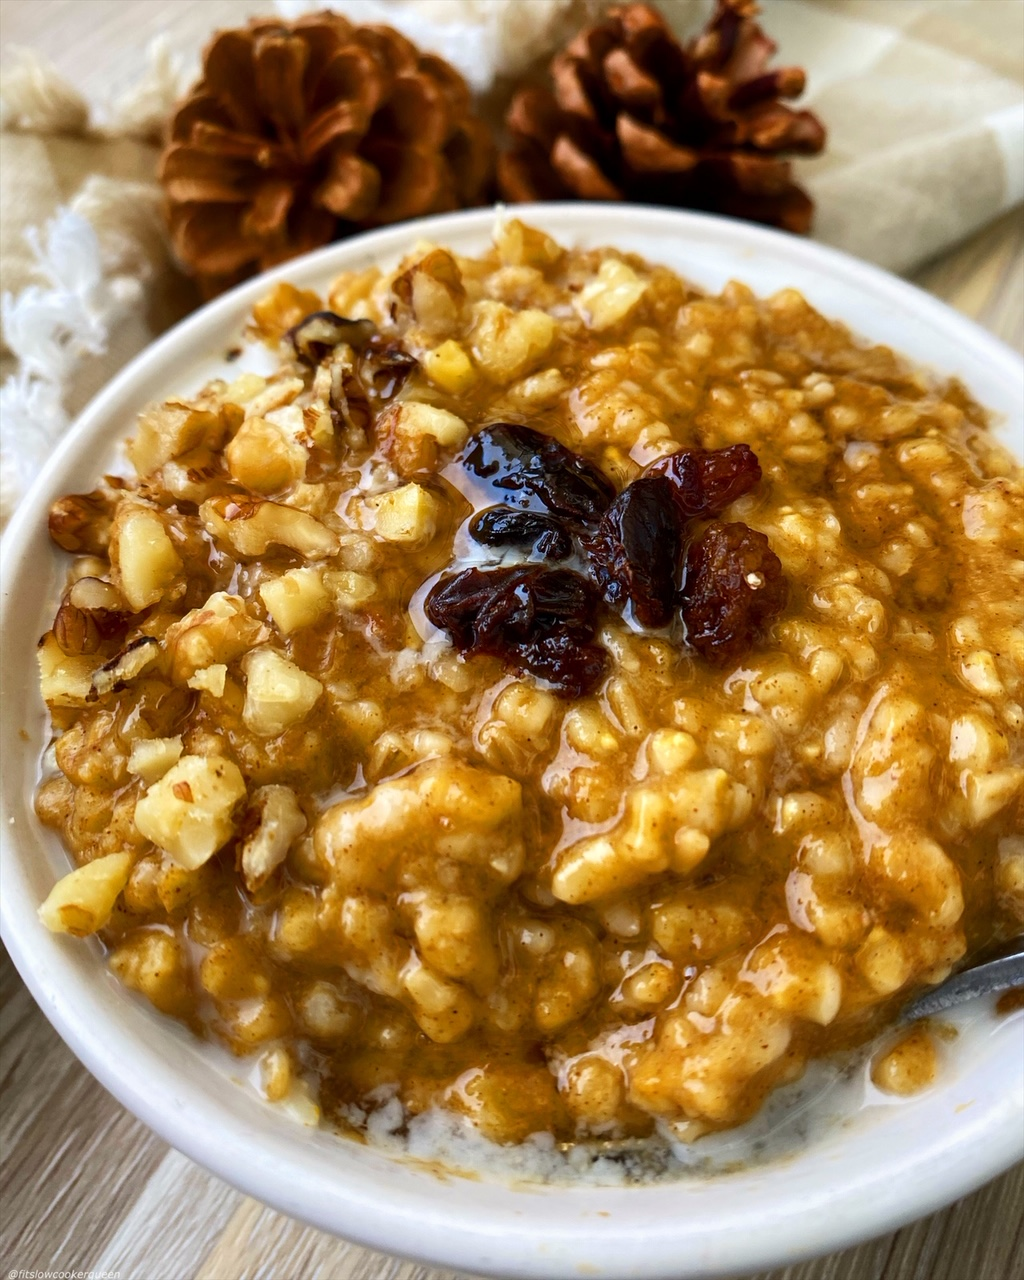 side, close up view of pumpkin oatmeal in a white bowl with raisins on top and almond milk